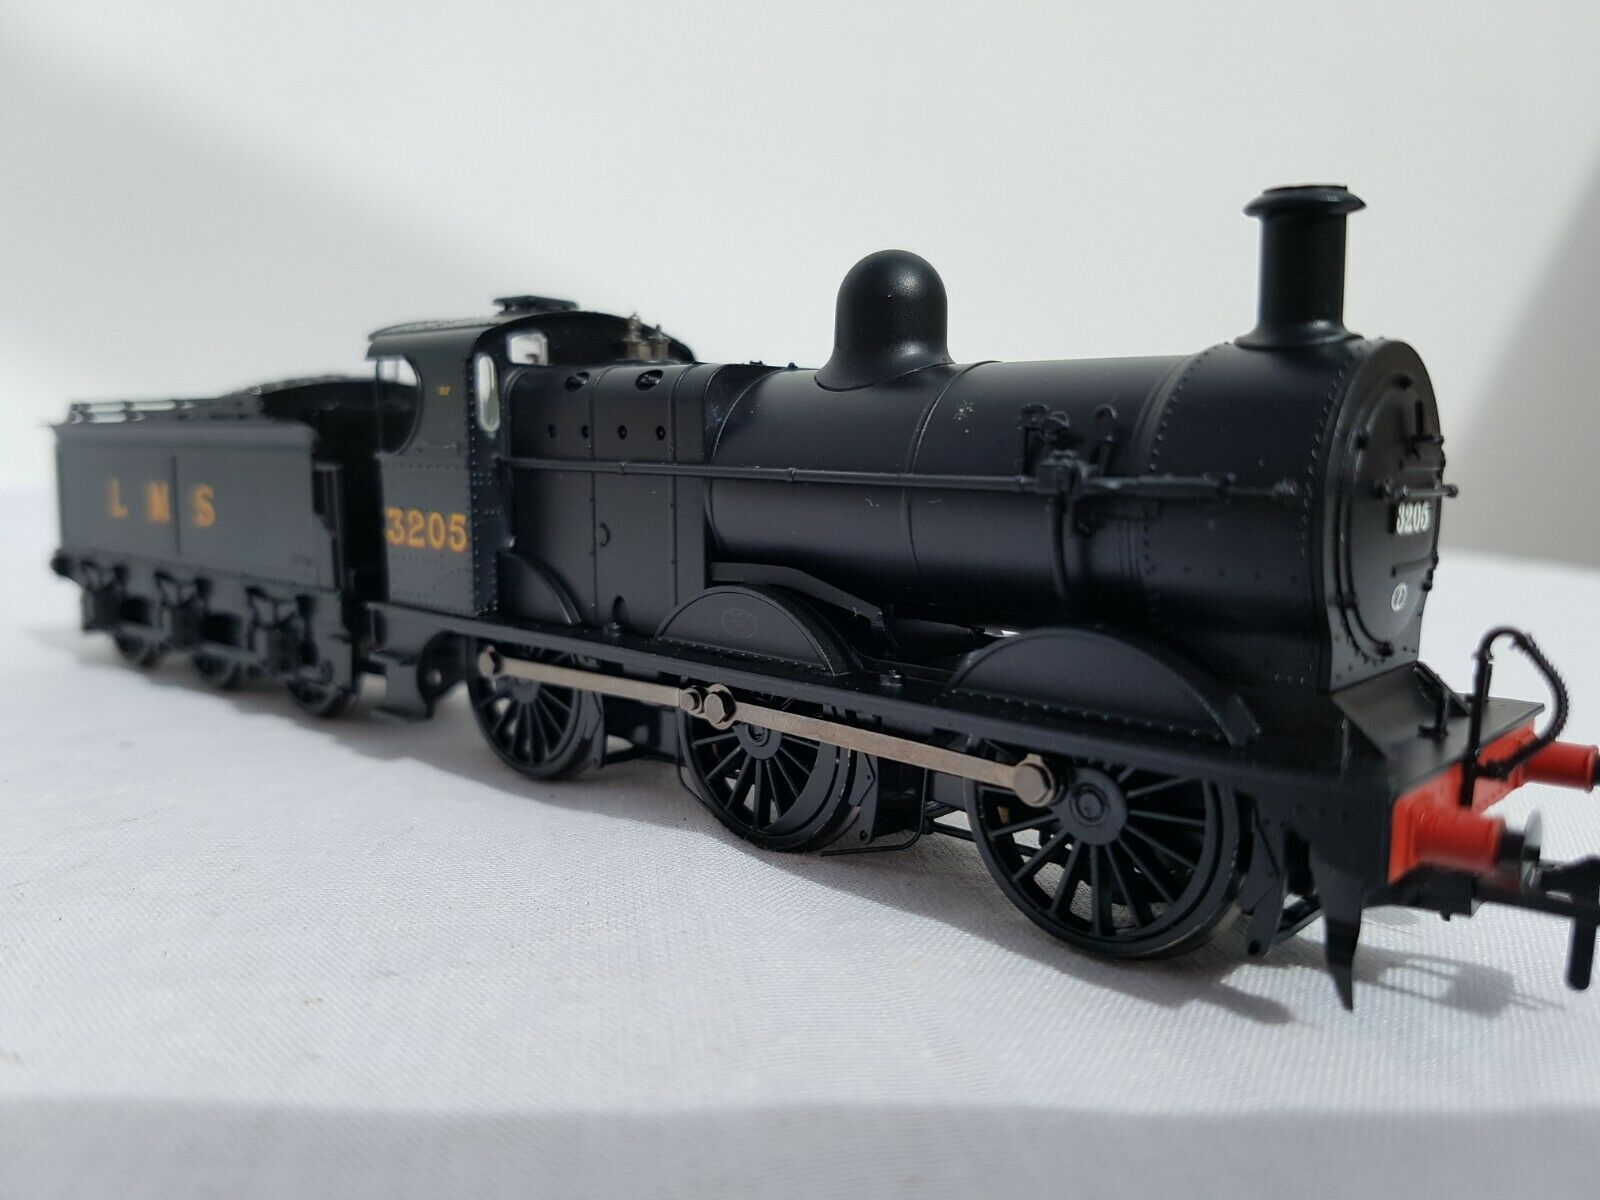 BACHMANN OO GAUGE 31-627 LMS 3205 3F LOCOMOTIVE UNUSED MINT & BOXED